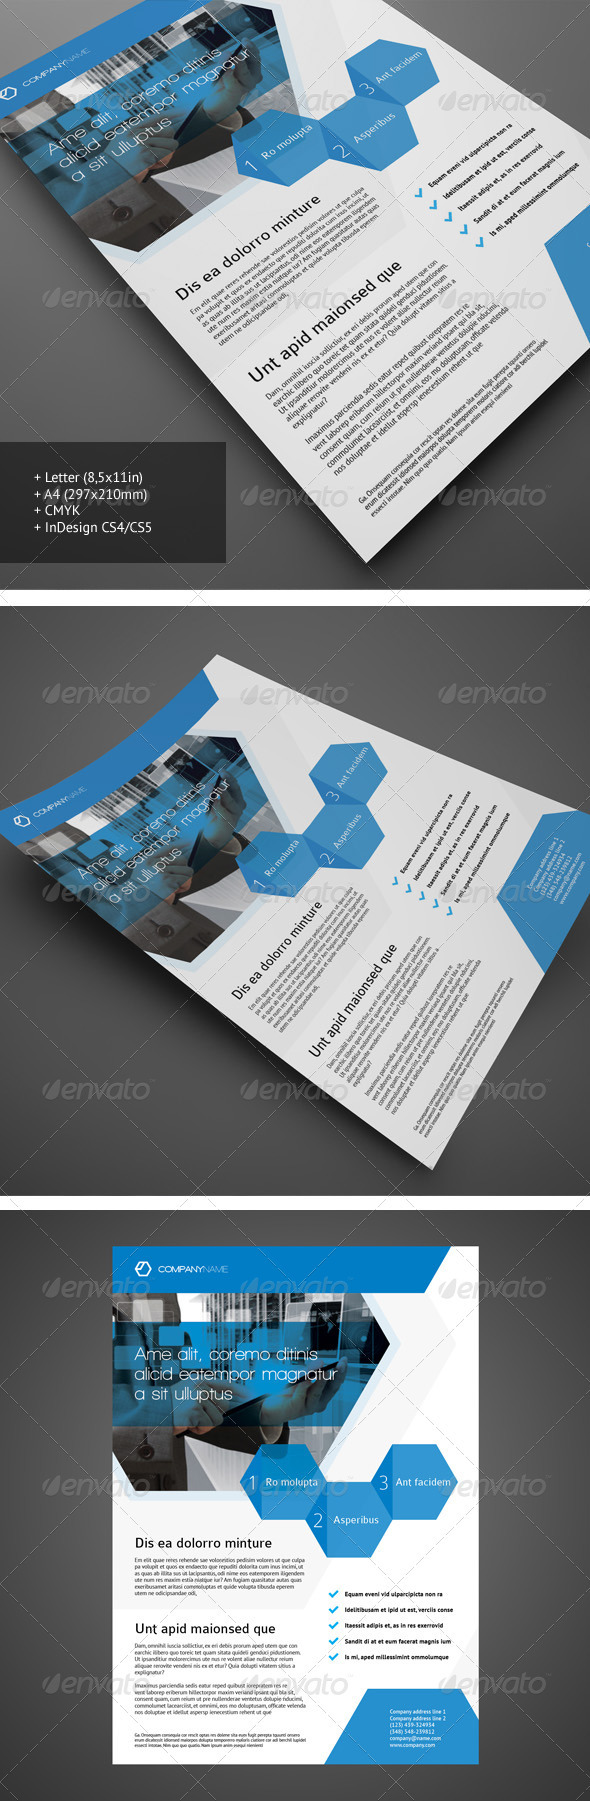 Corporate Flyer 4 - Corporate Flyers